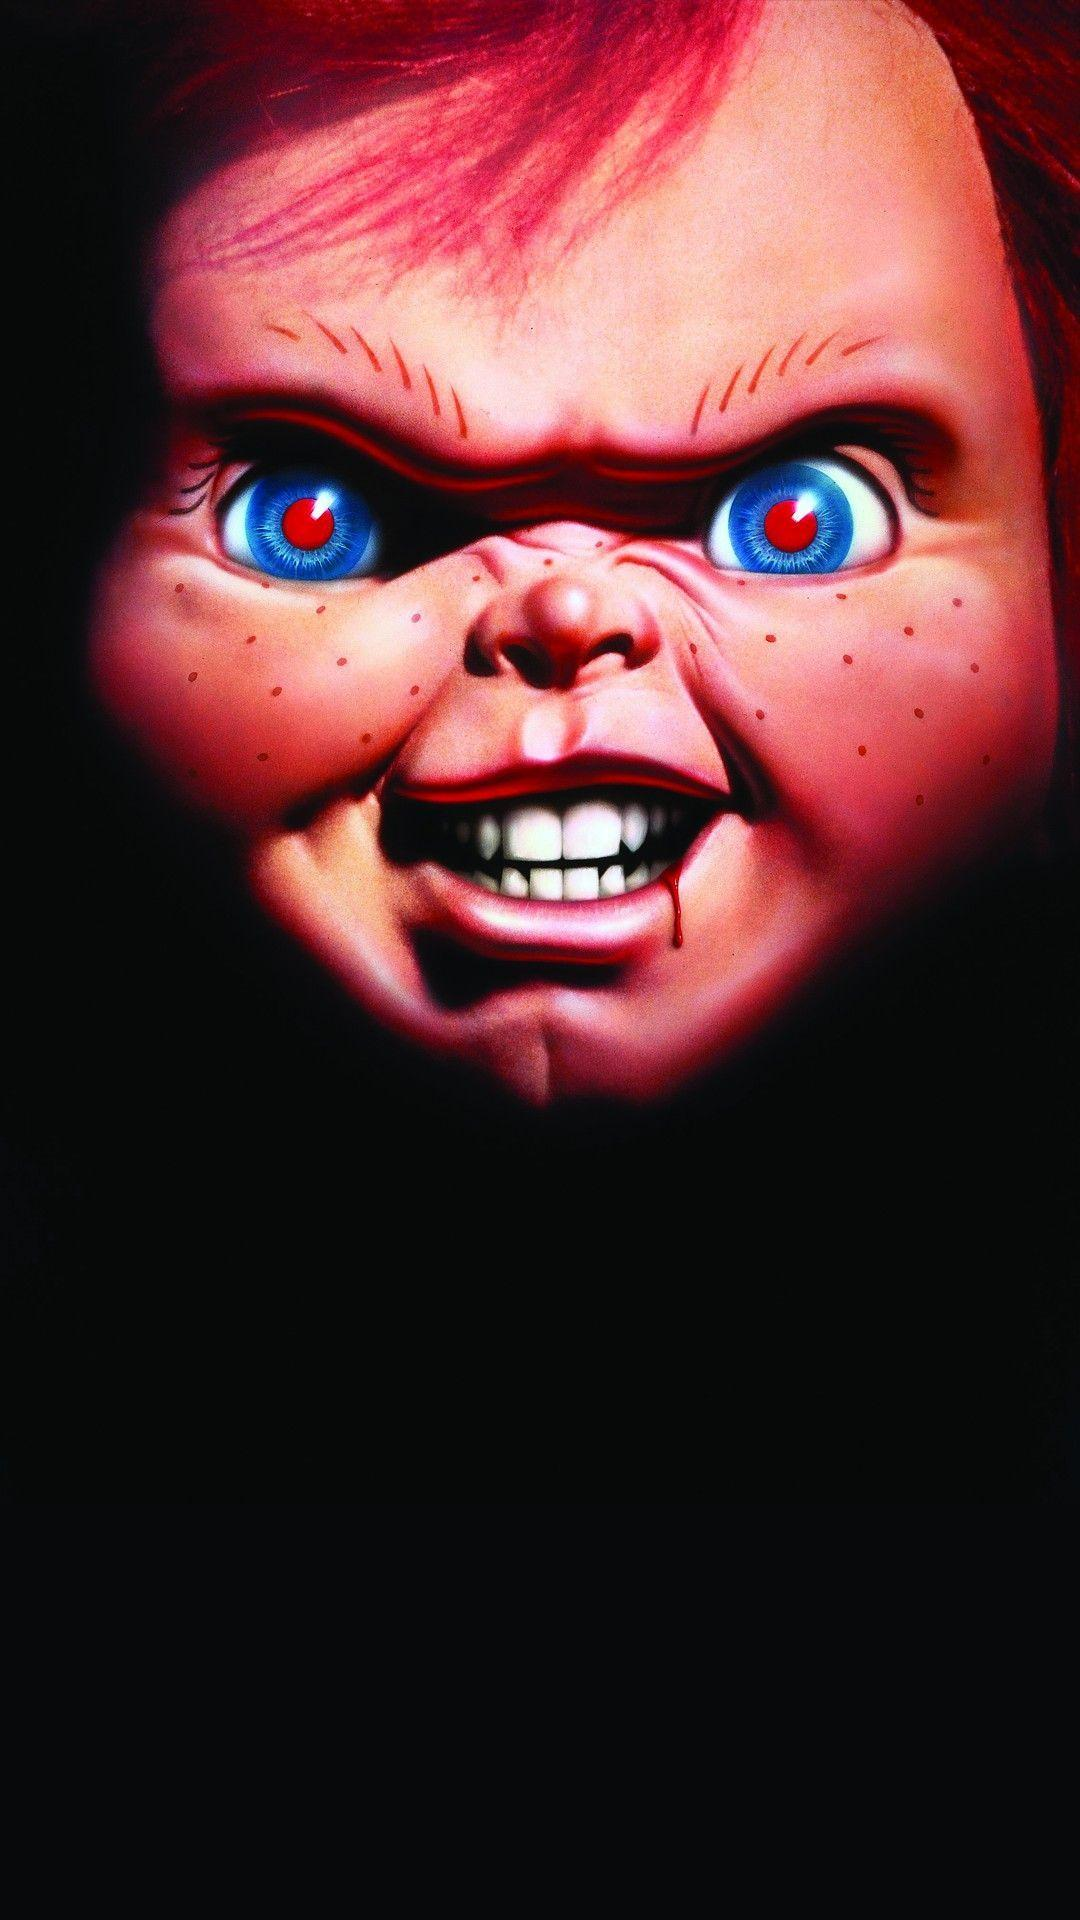 Scary dolls wallpapers wallpaper cave - Scary wallpaper iphone ...